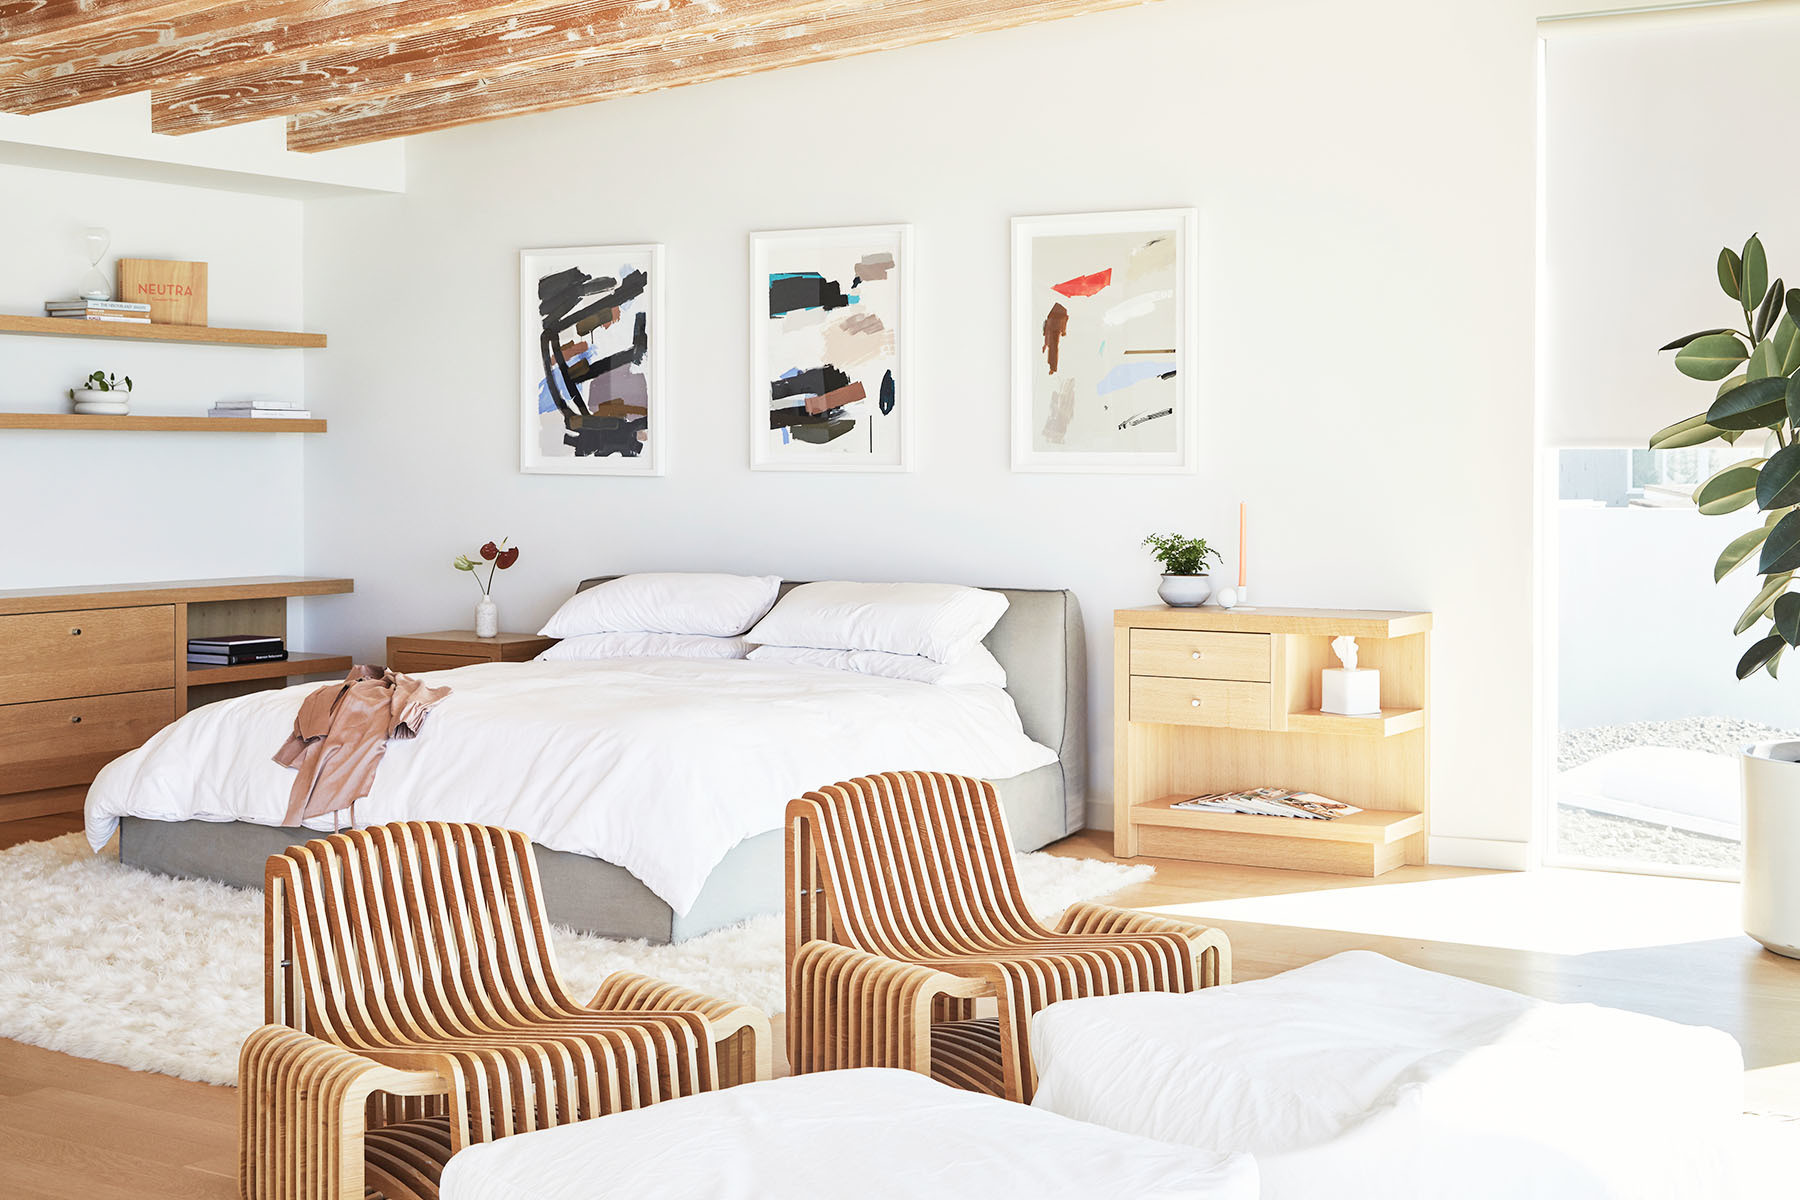 This entrepreneur's Malibu beach house is a breath of fresh air. Custom Bed | Karina Bania Triptych via Uprise Art | Custom Side Tables | Custom Shelving | Vintage Armchairs | Restoration Hardware Bedding | Taschen Book | Garmentory Accent Pieces | Maaari Ceramics | Joss & Main Rug | Lunya Robe.